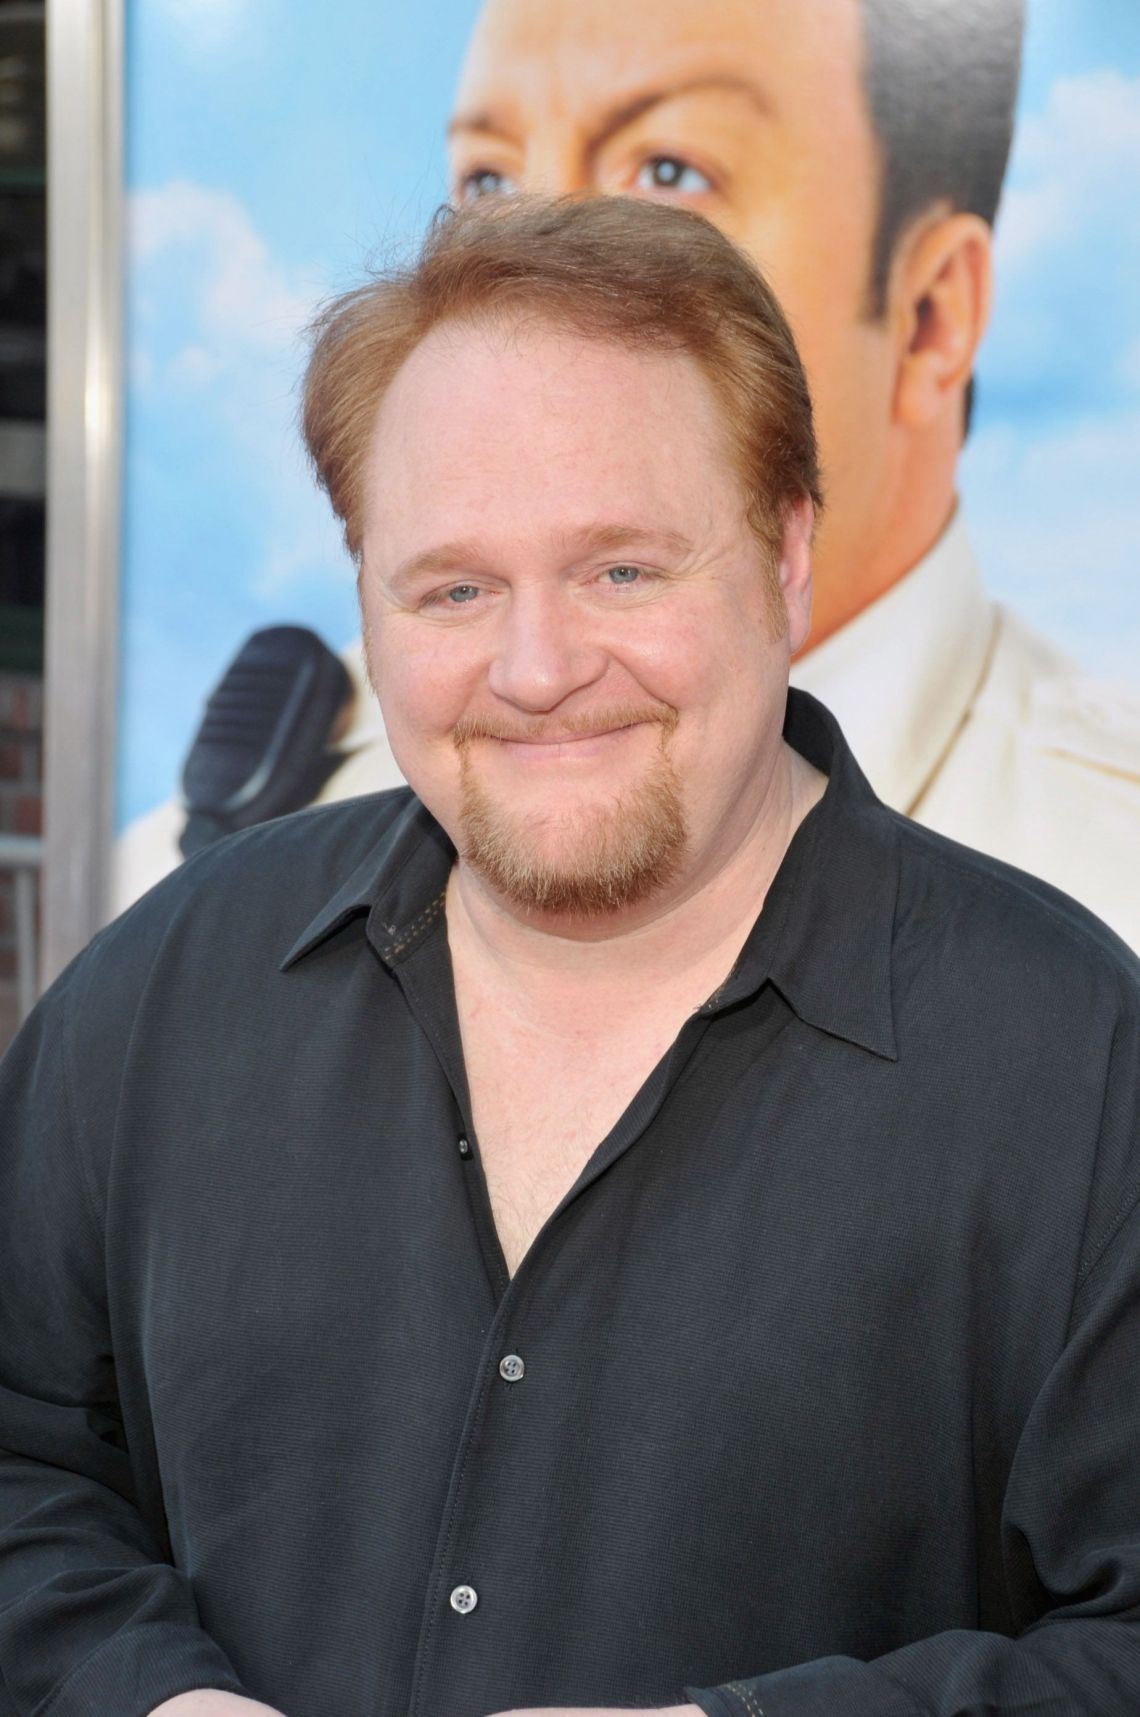 While he was never actually shown on screen, this is Nick Bakay, the actor who provided the voice for Salem throughout the series.He now acts as a producer and writer, working on the sitcom 'Mom', where he also voices theself-help radio announcer. He also-co-wrote film 'Paul Blart: Mall Cop' and its sequel.